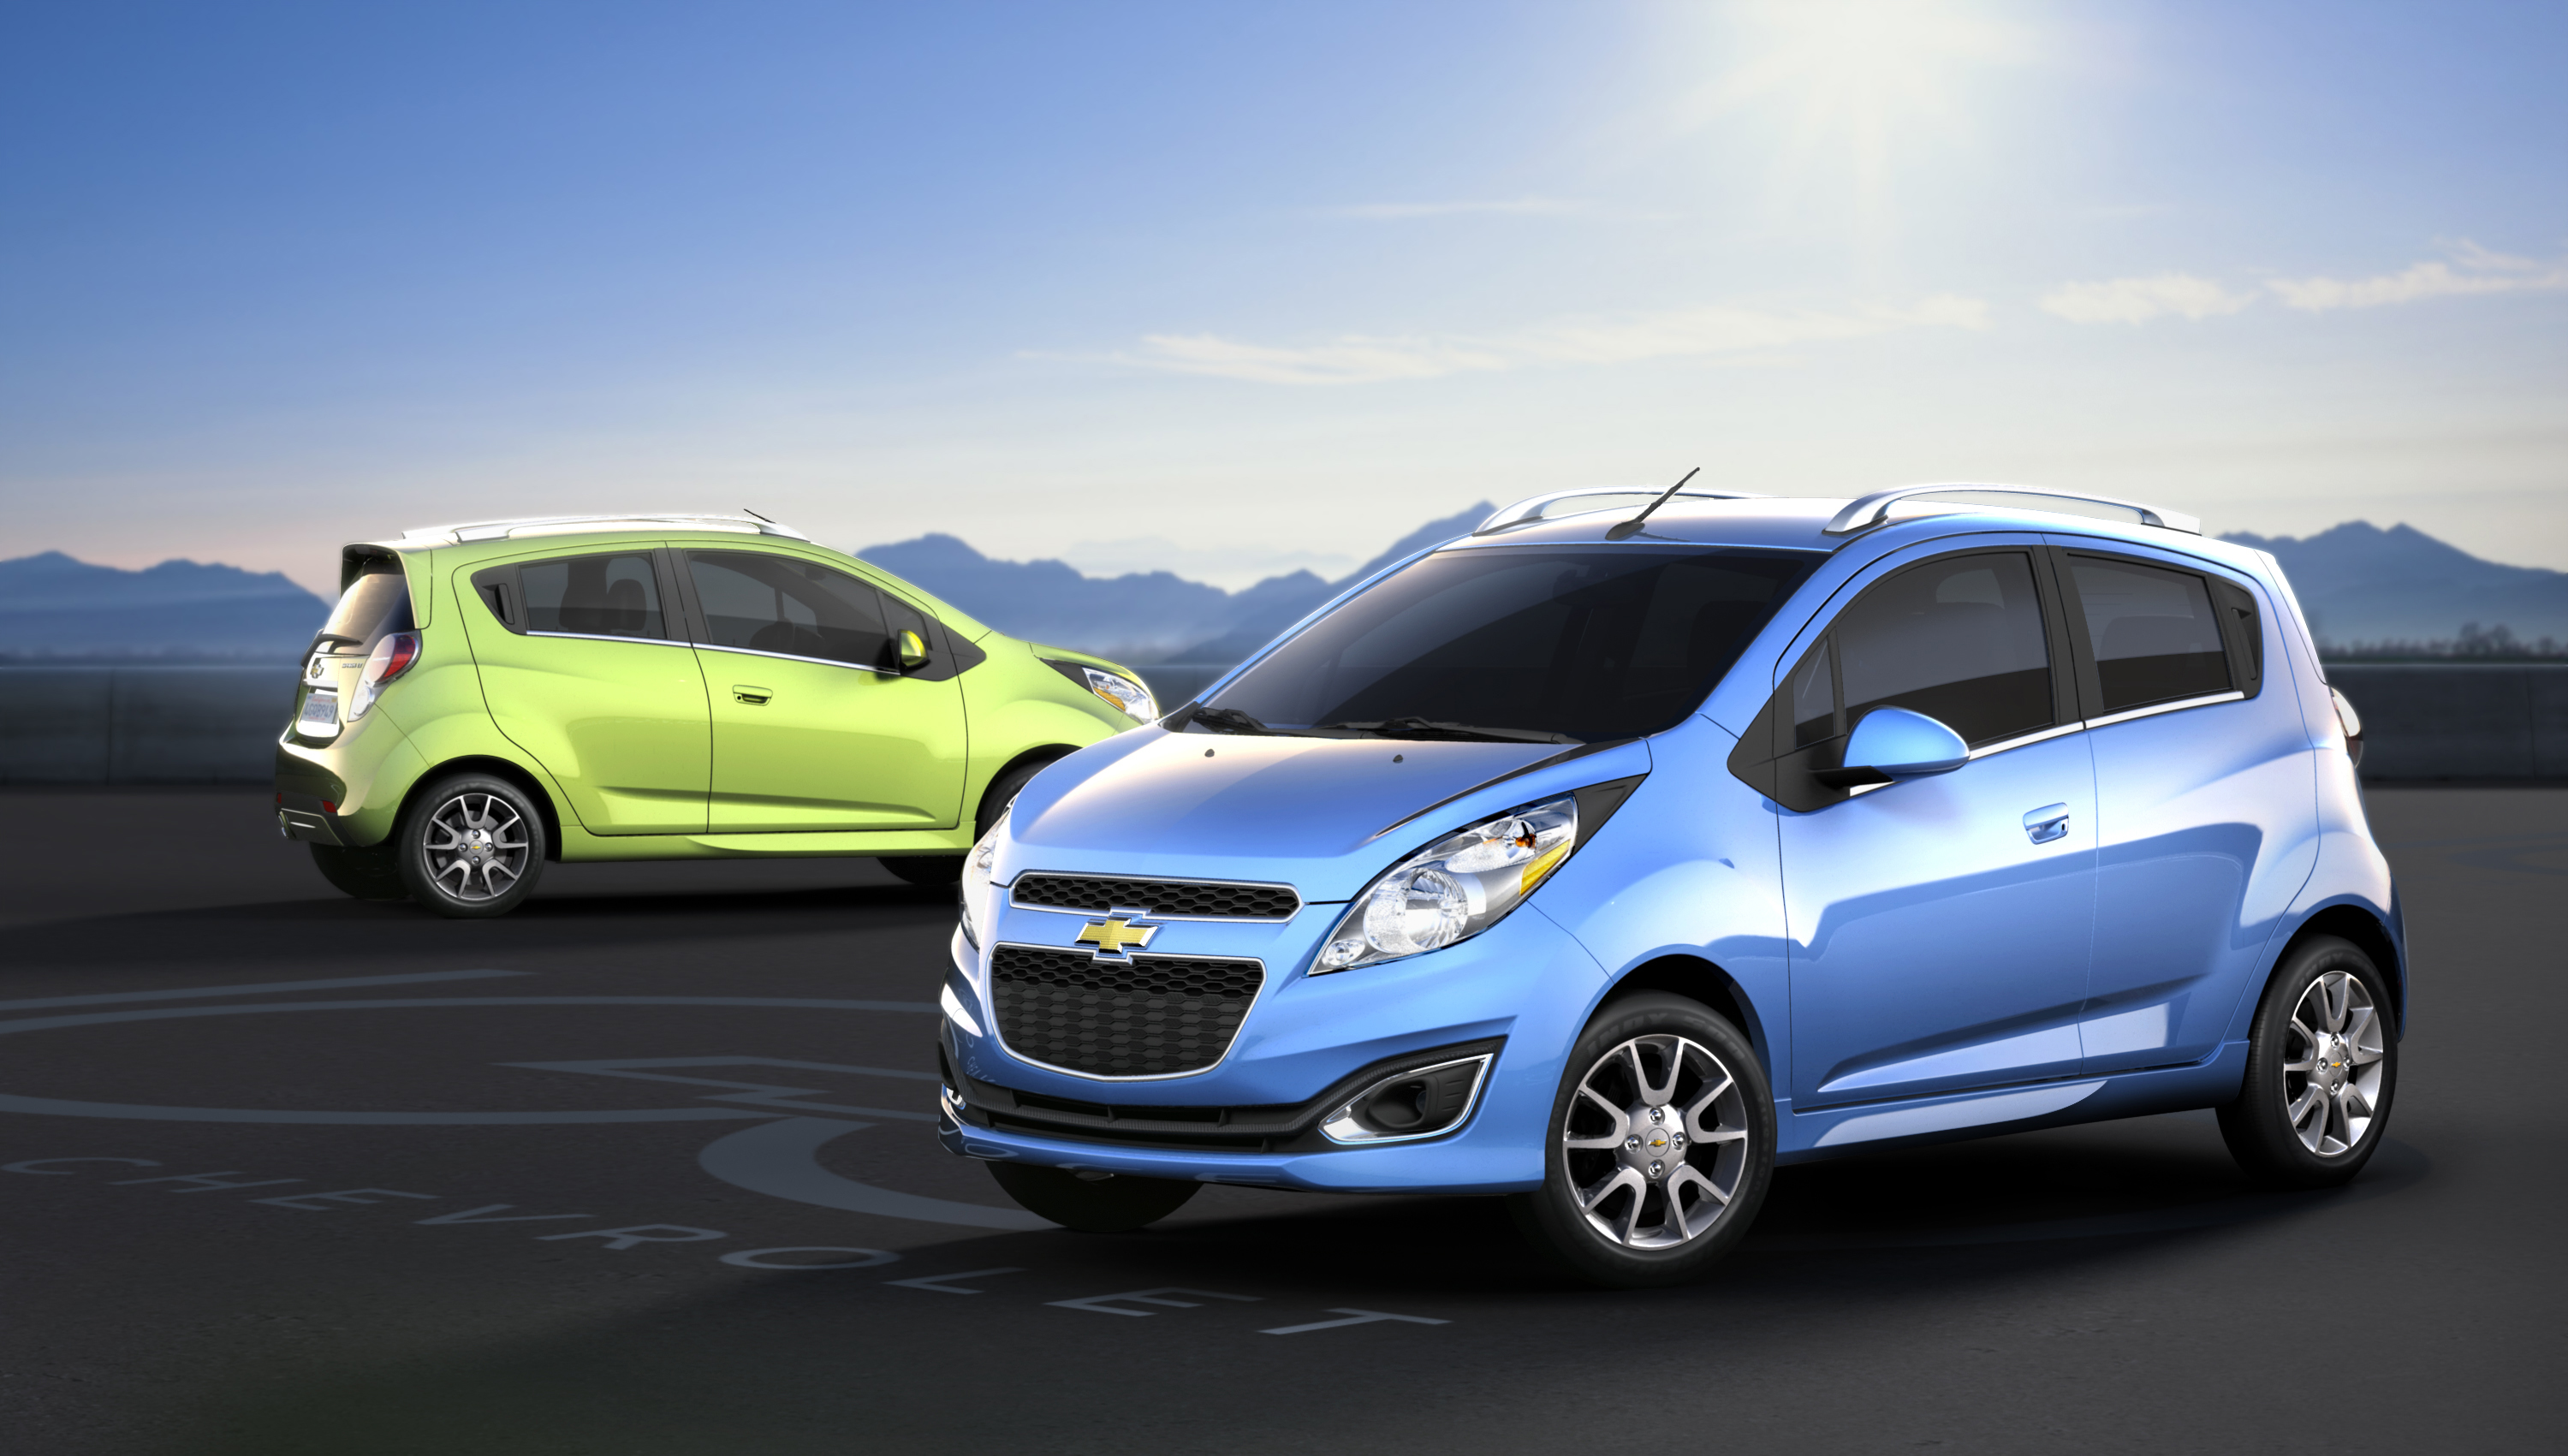 cars suv watch small full chevrolet youtube car overview trax